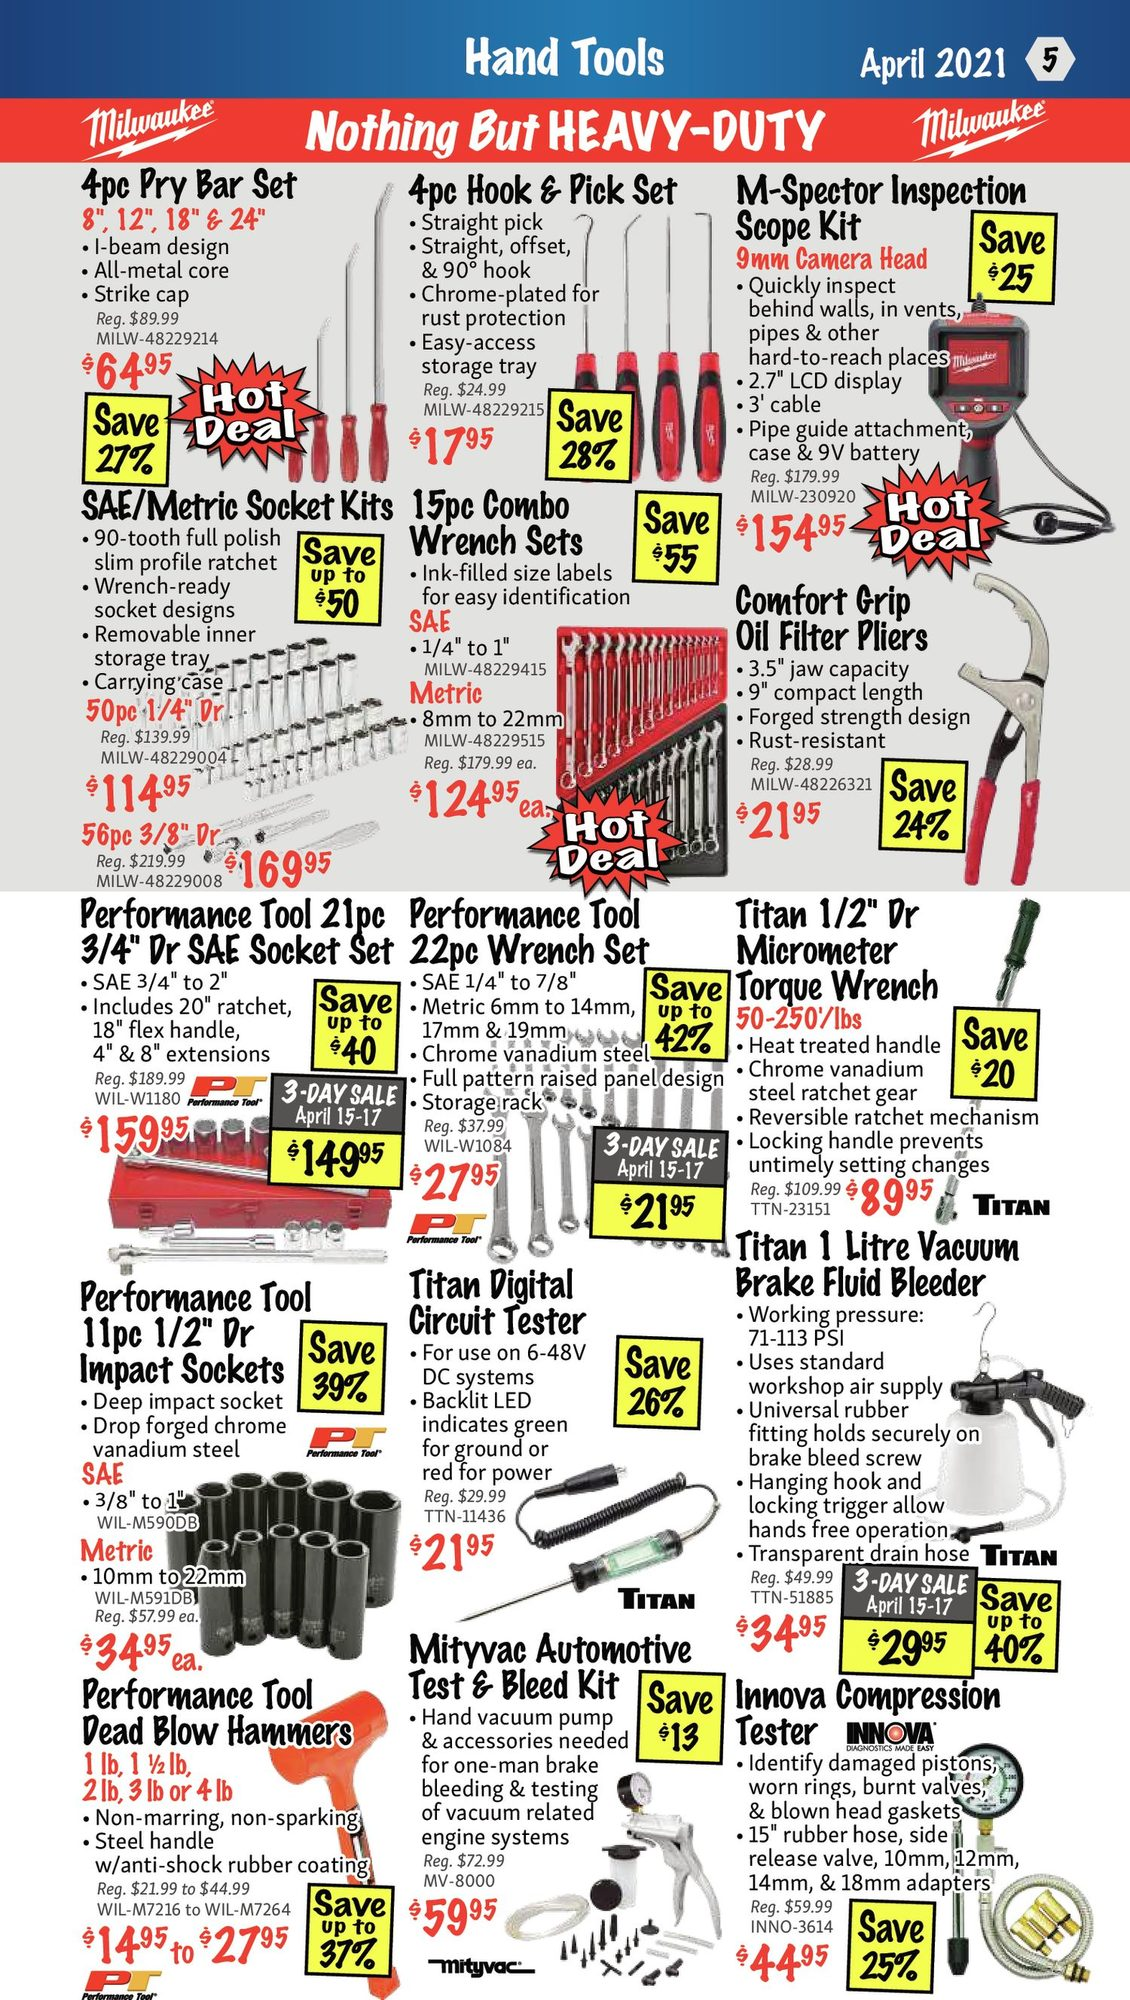 KMS Tools - Hand Tools, Air Tools & Compressor Sale - Page 5